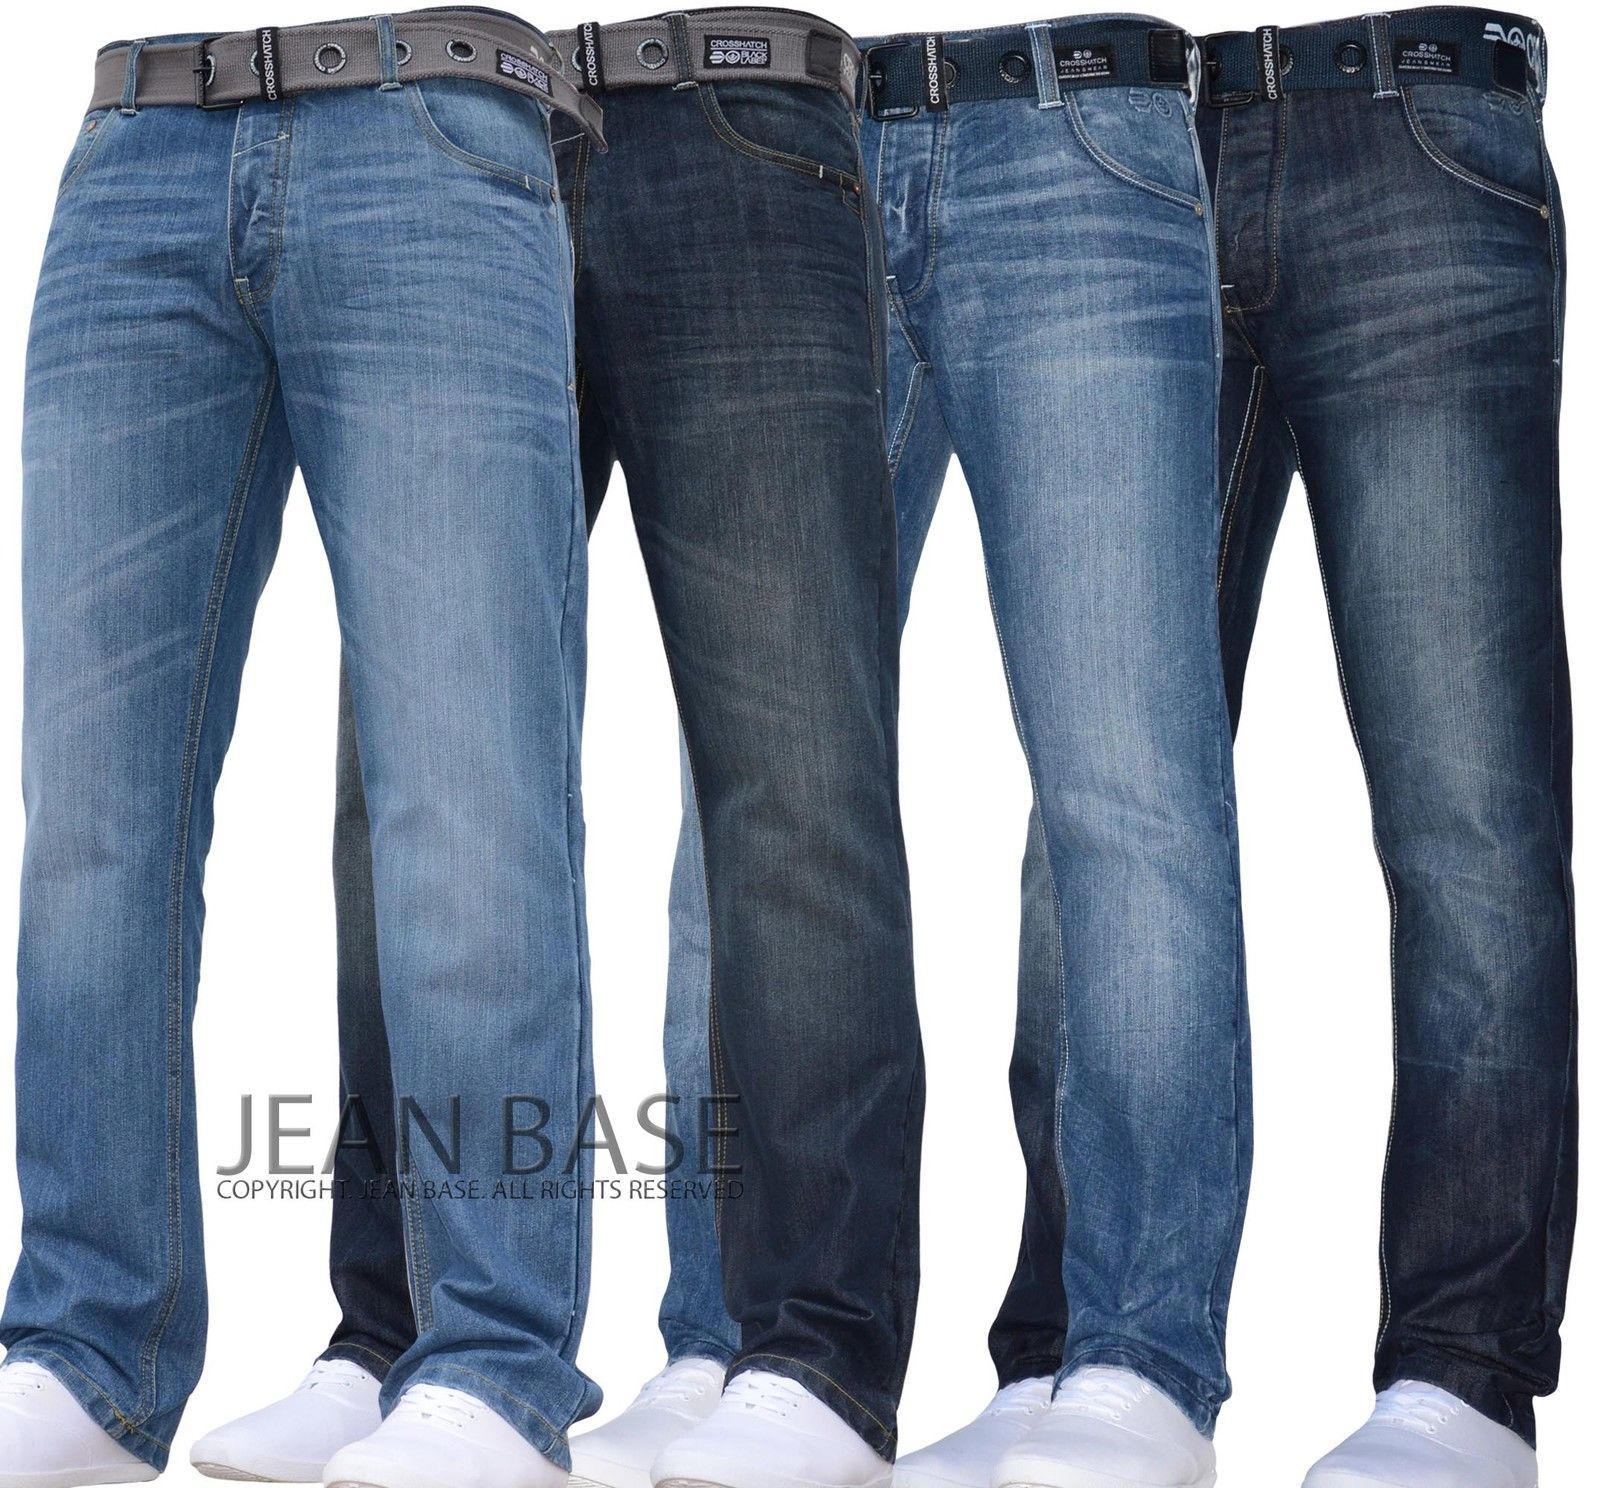 2f2aa3a16f9 NEW MENS CROSSHATCH STRAIGHT LEG DARK BLUE JEANS ALL WAIST SIZES JEANBASE  NW1 | eBay #Denim Jean Pants Men #Denim Pants #Denim Jeans for Men #Denims  for Men